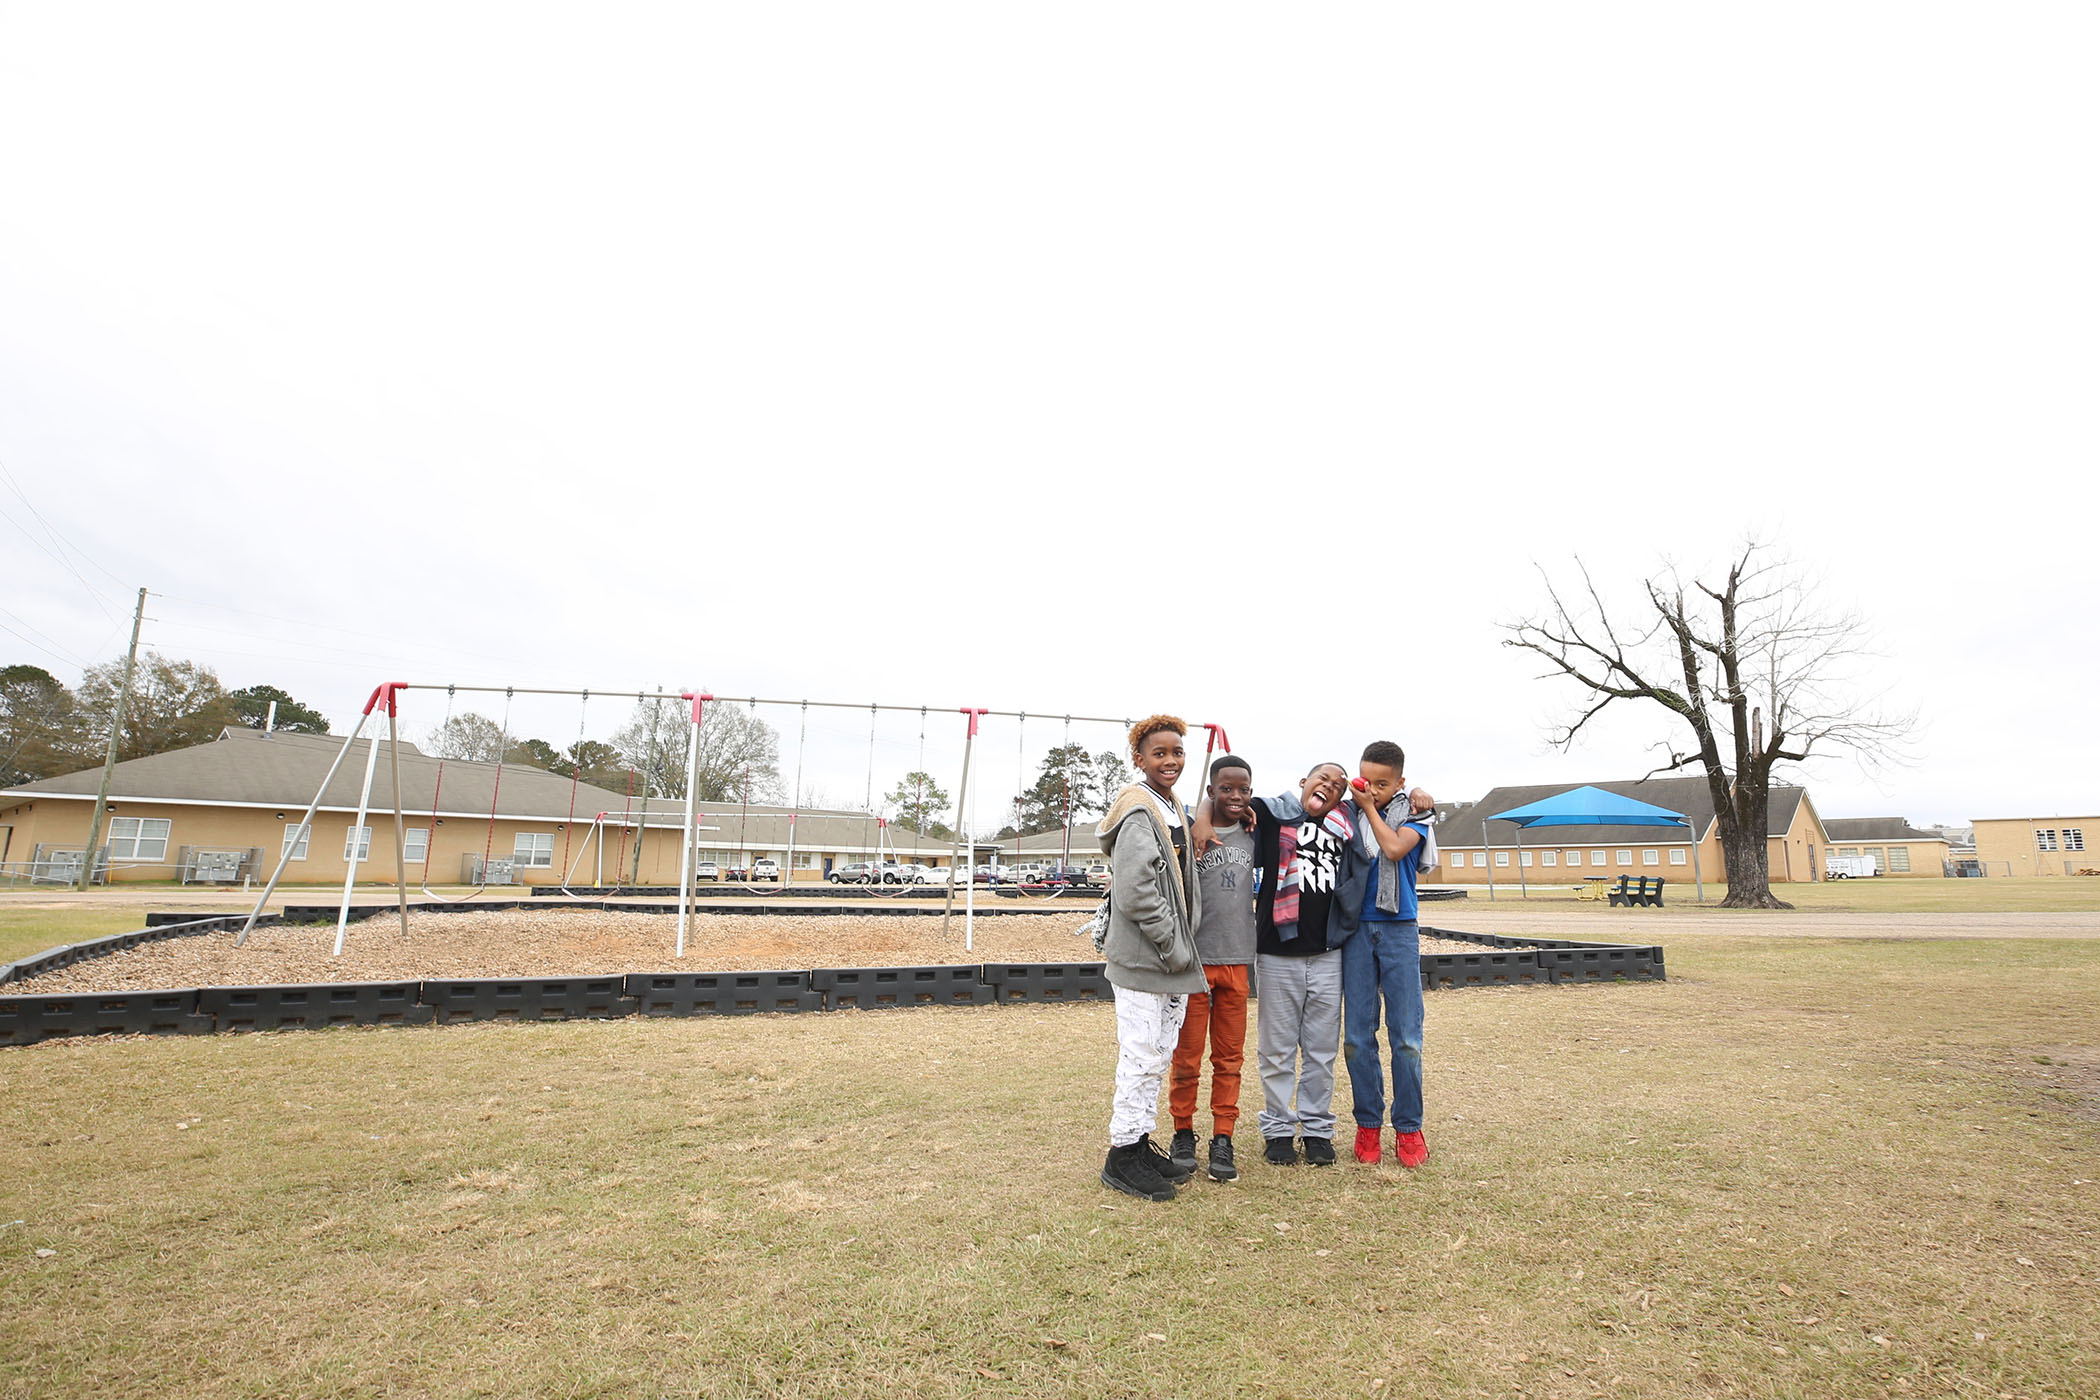 QUE students stand proudly on the playground they volunteered to clean.